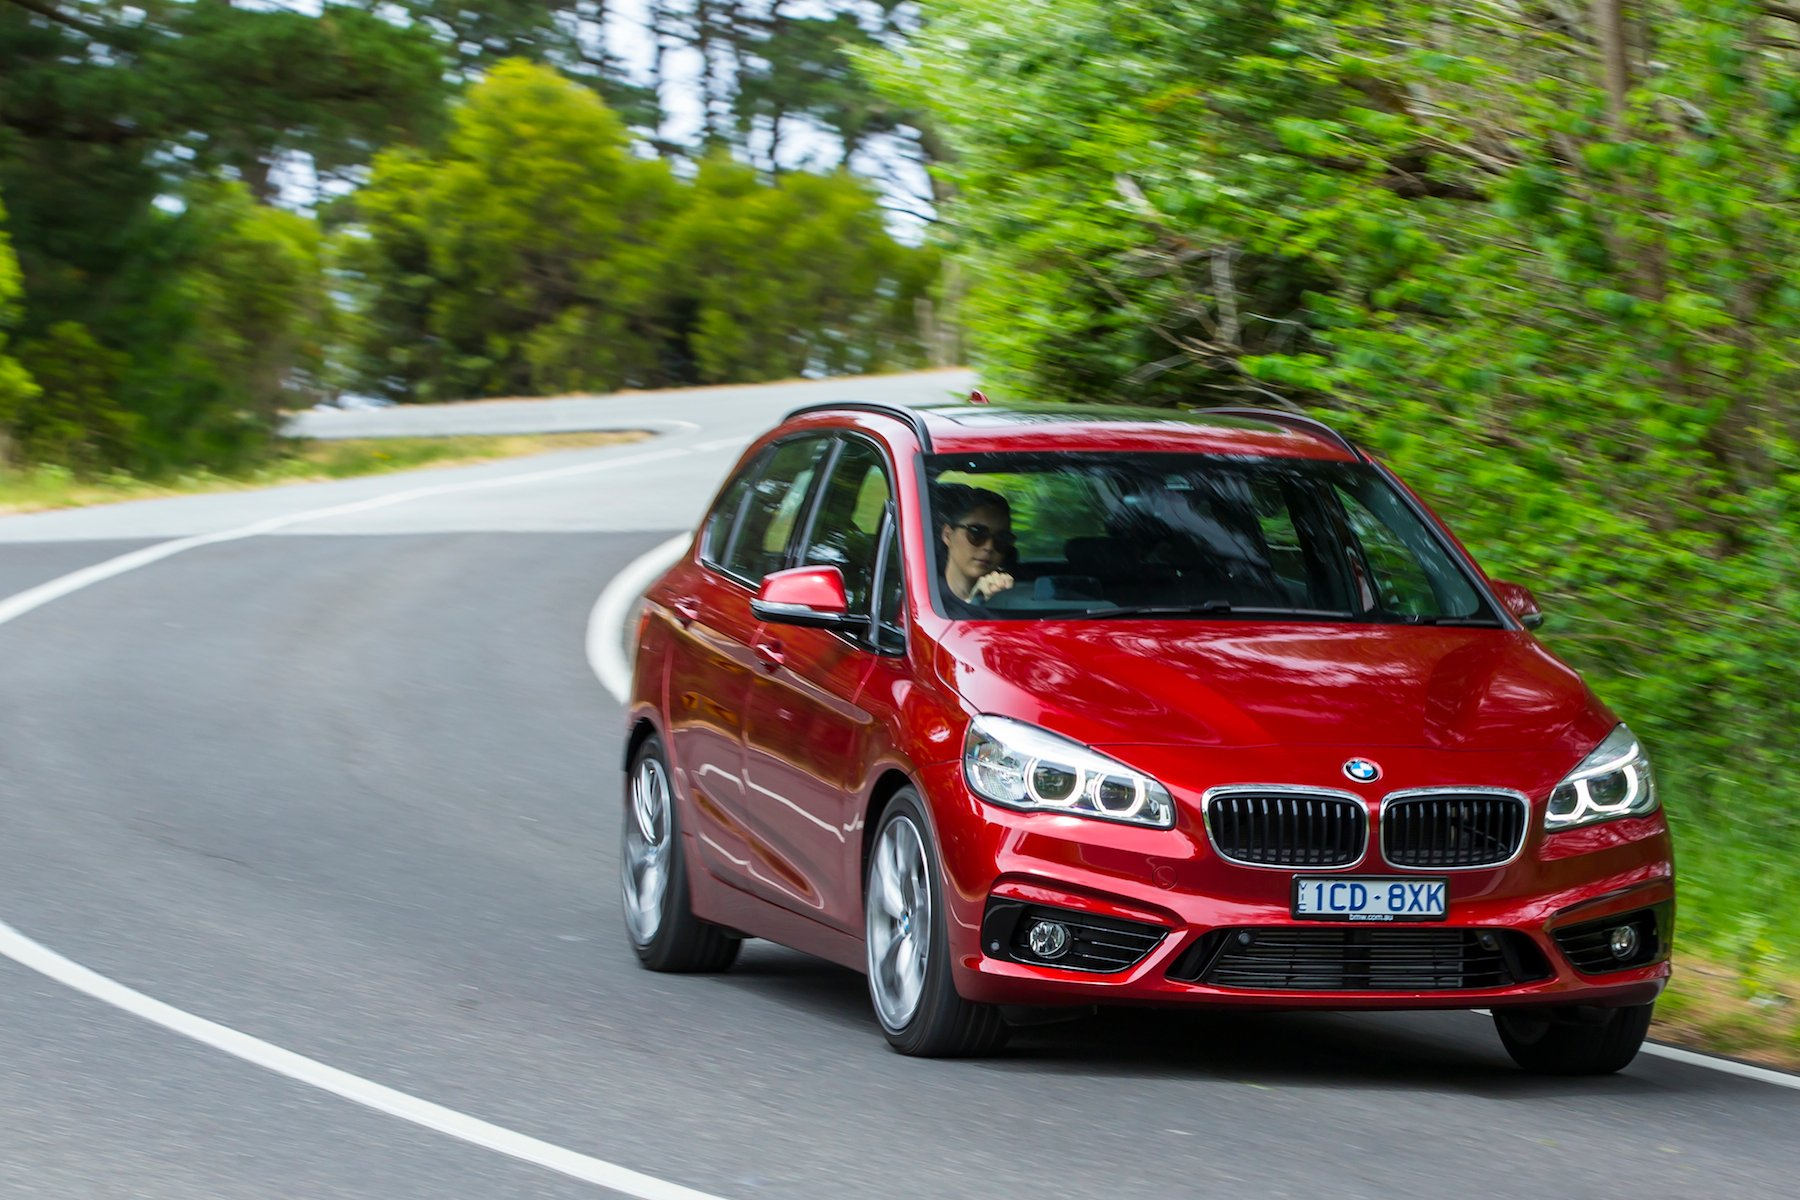 Camry Vs Corolla >> BMW 2 Series Active Tourer Review | CarAdvice